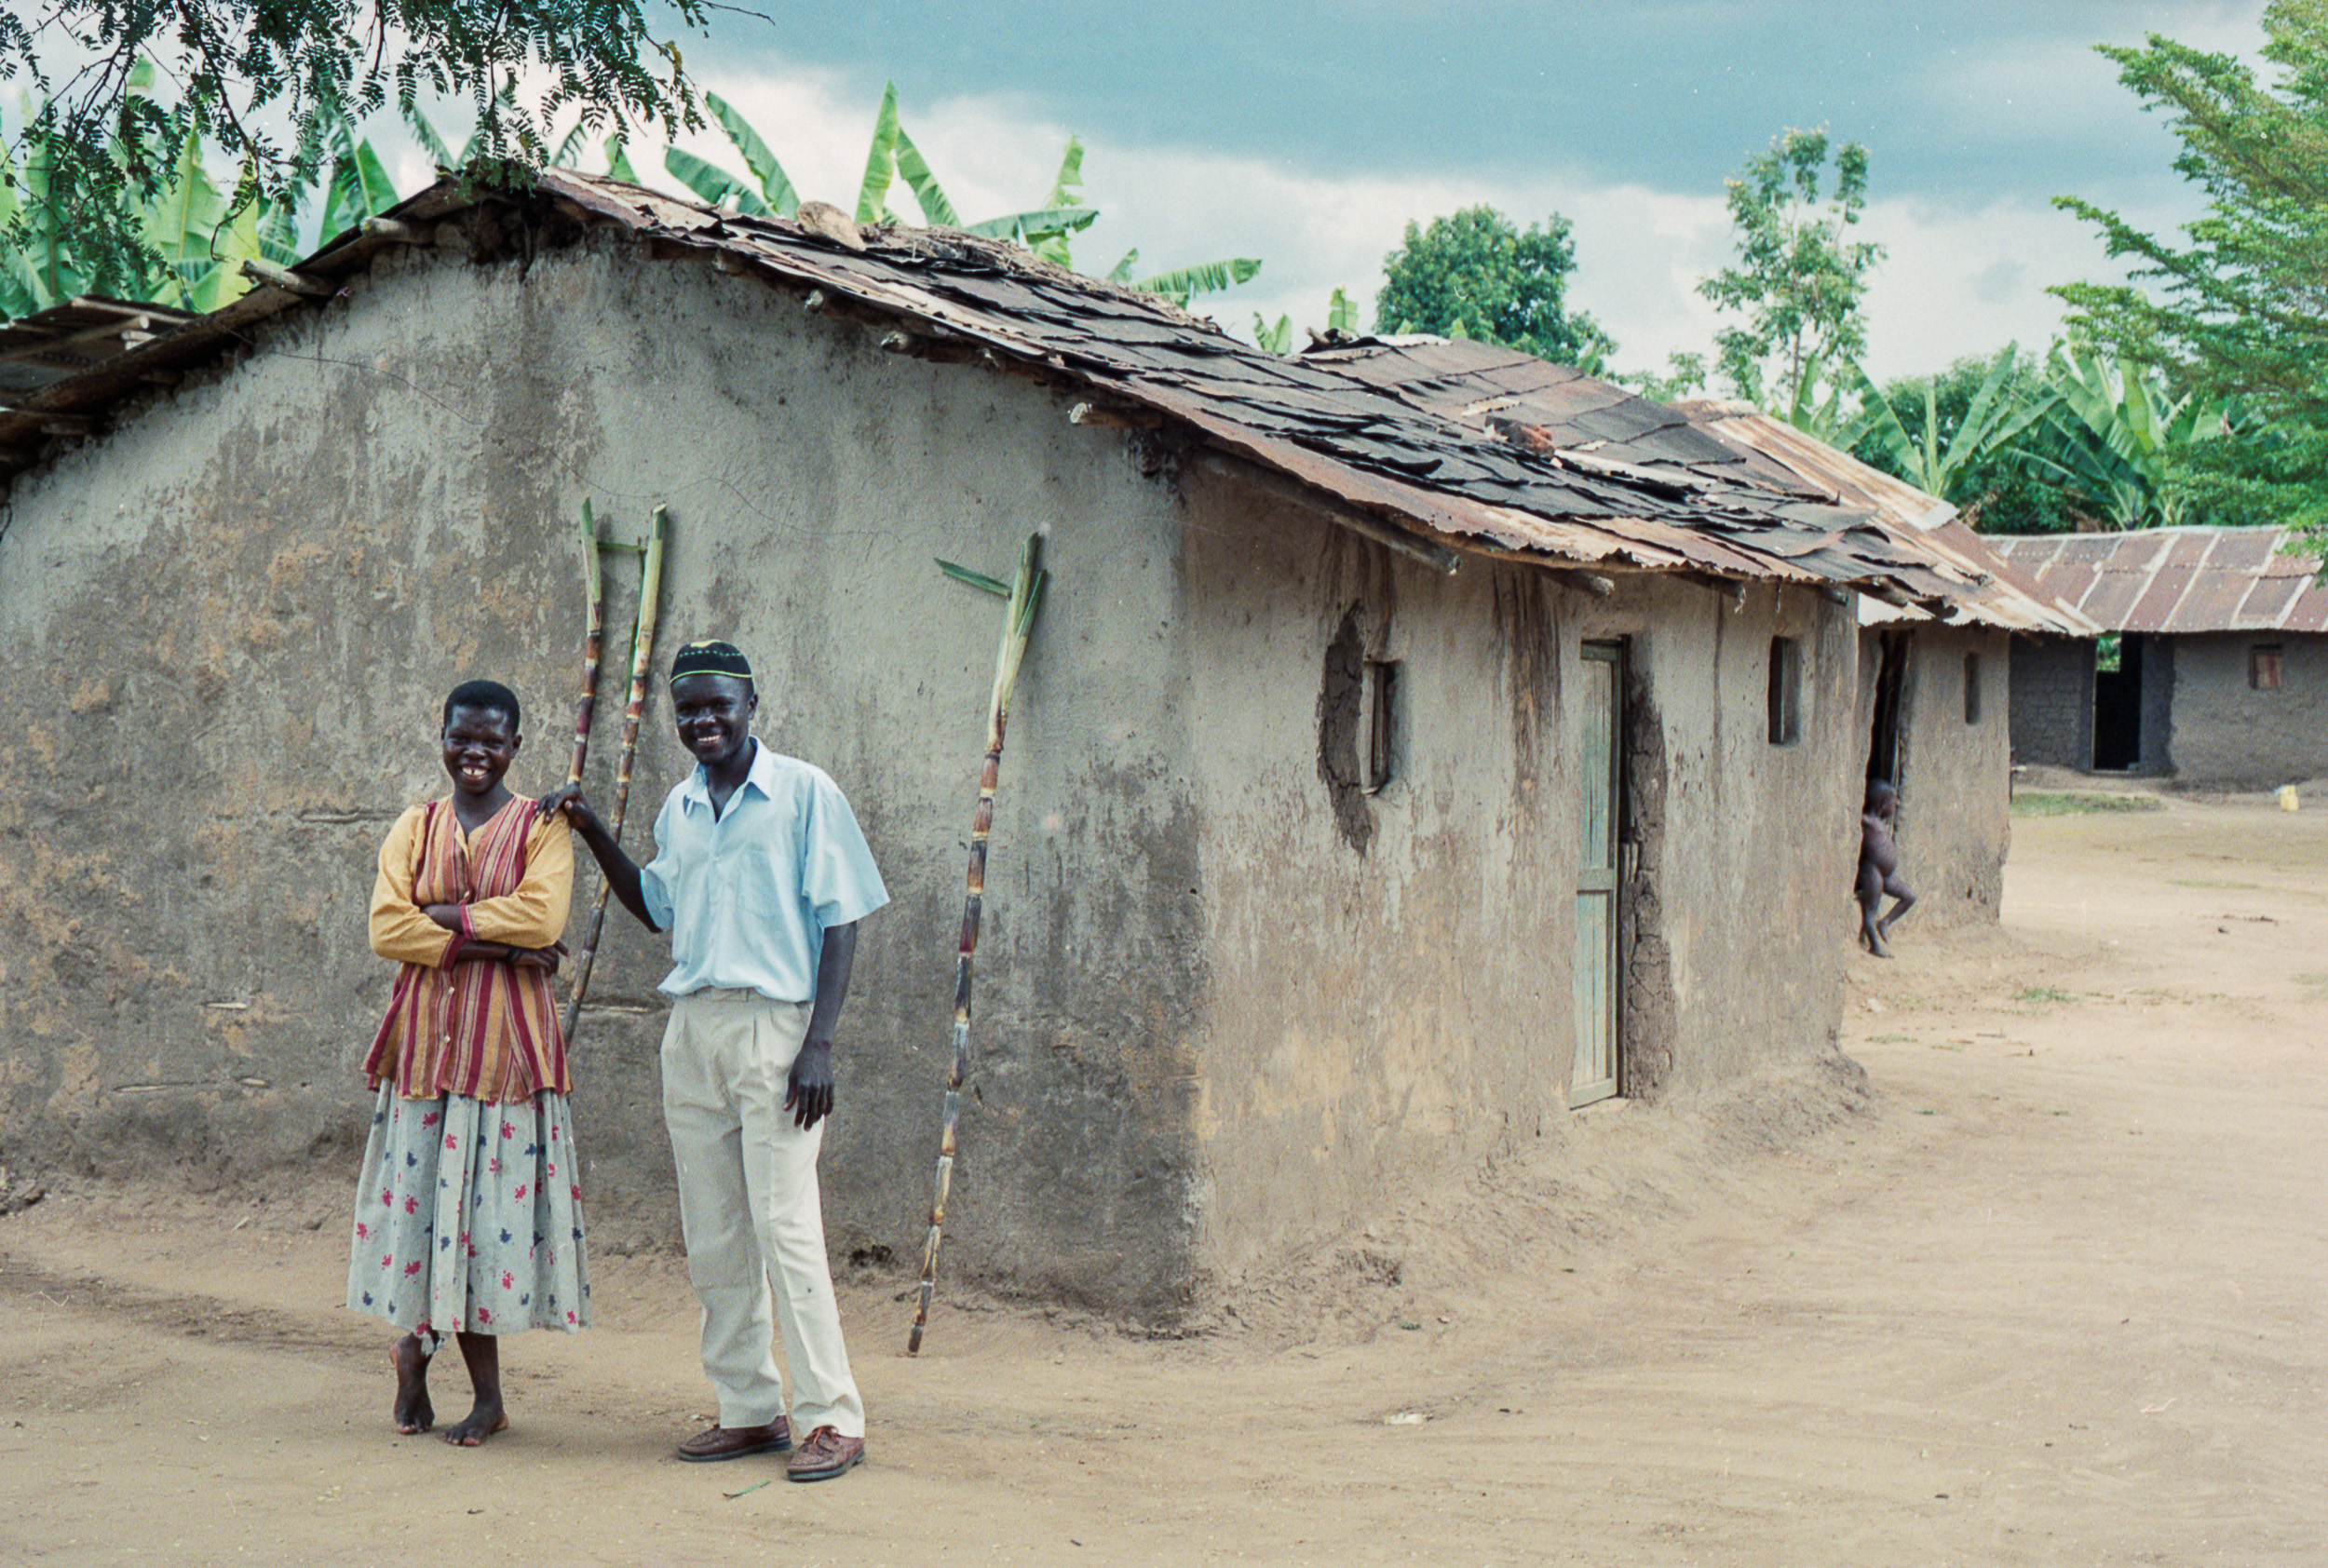 Athaliah Deborah and her husband Musenze Pinehas in front of a typical Eastern Ugandan home. The sugar cane behind them is from a nearby field.